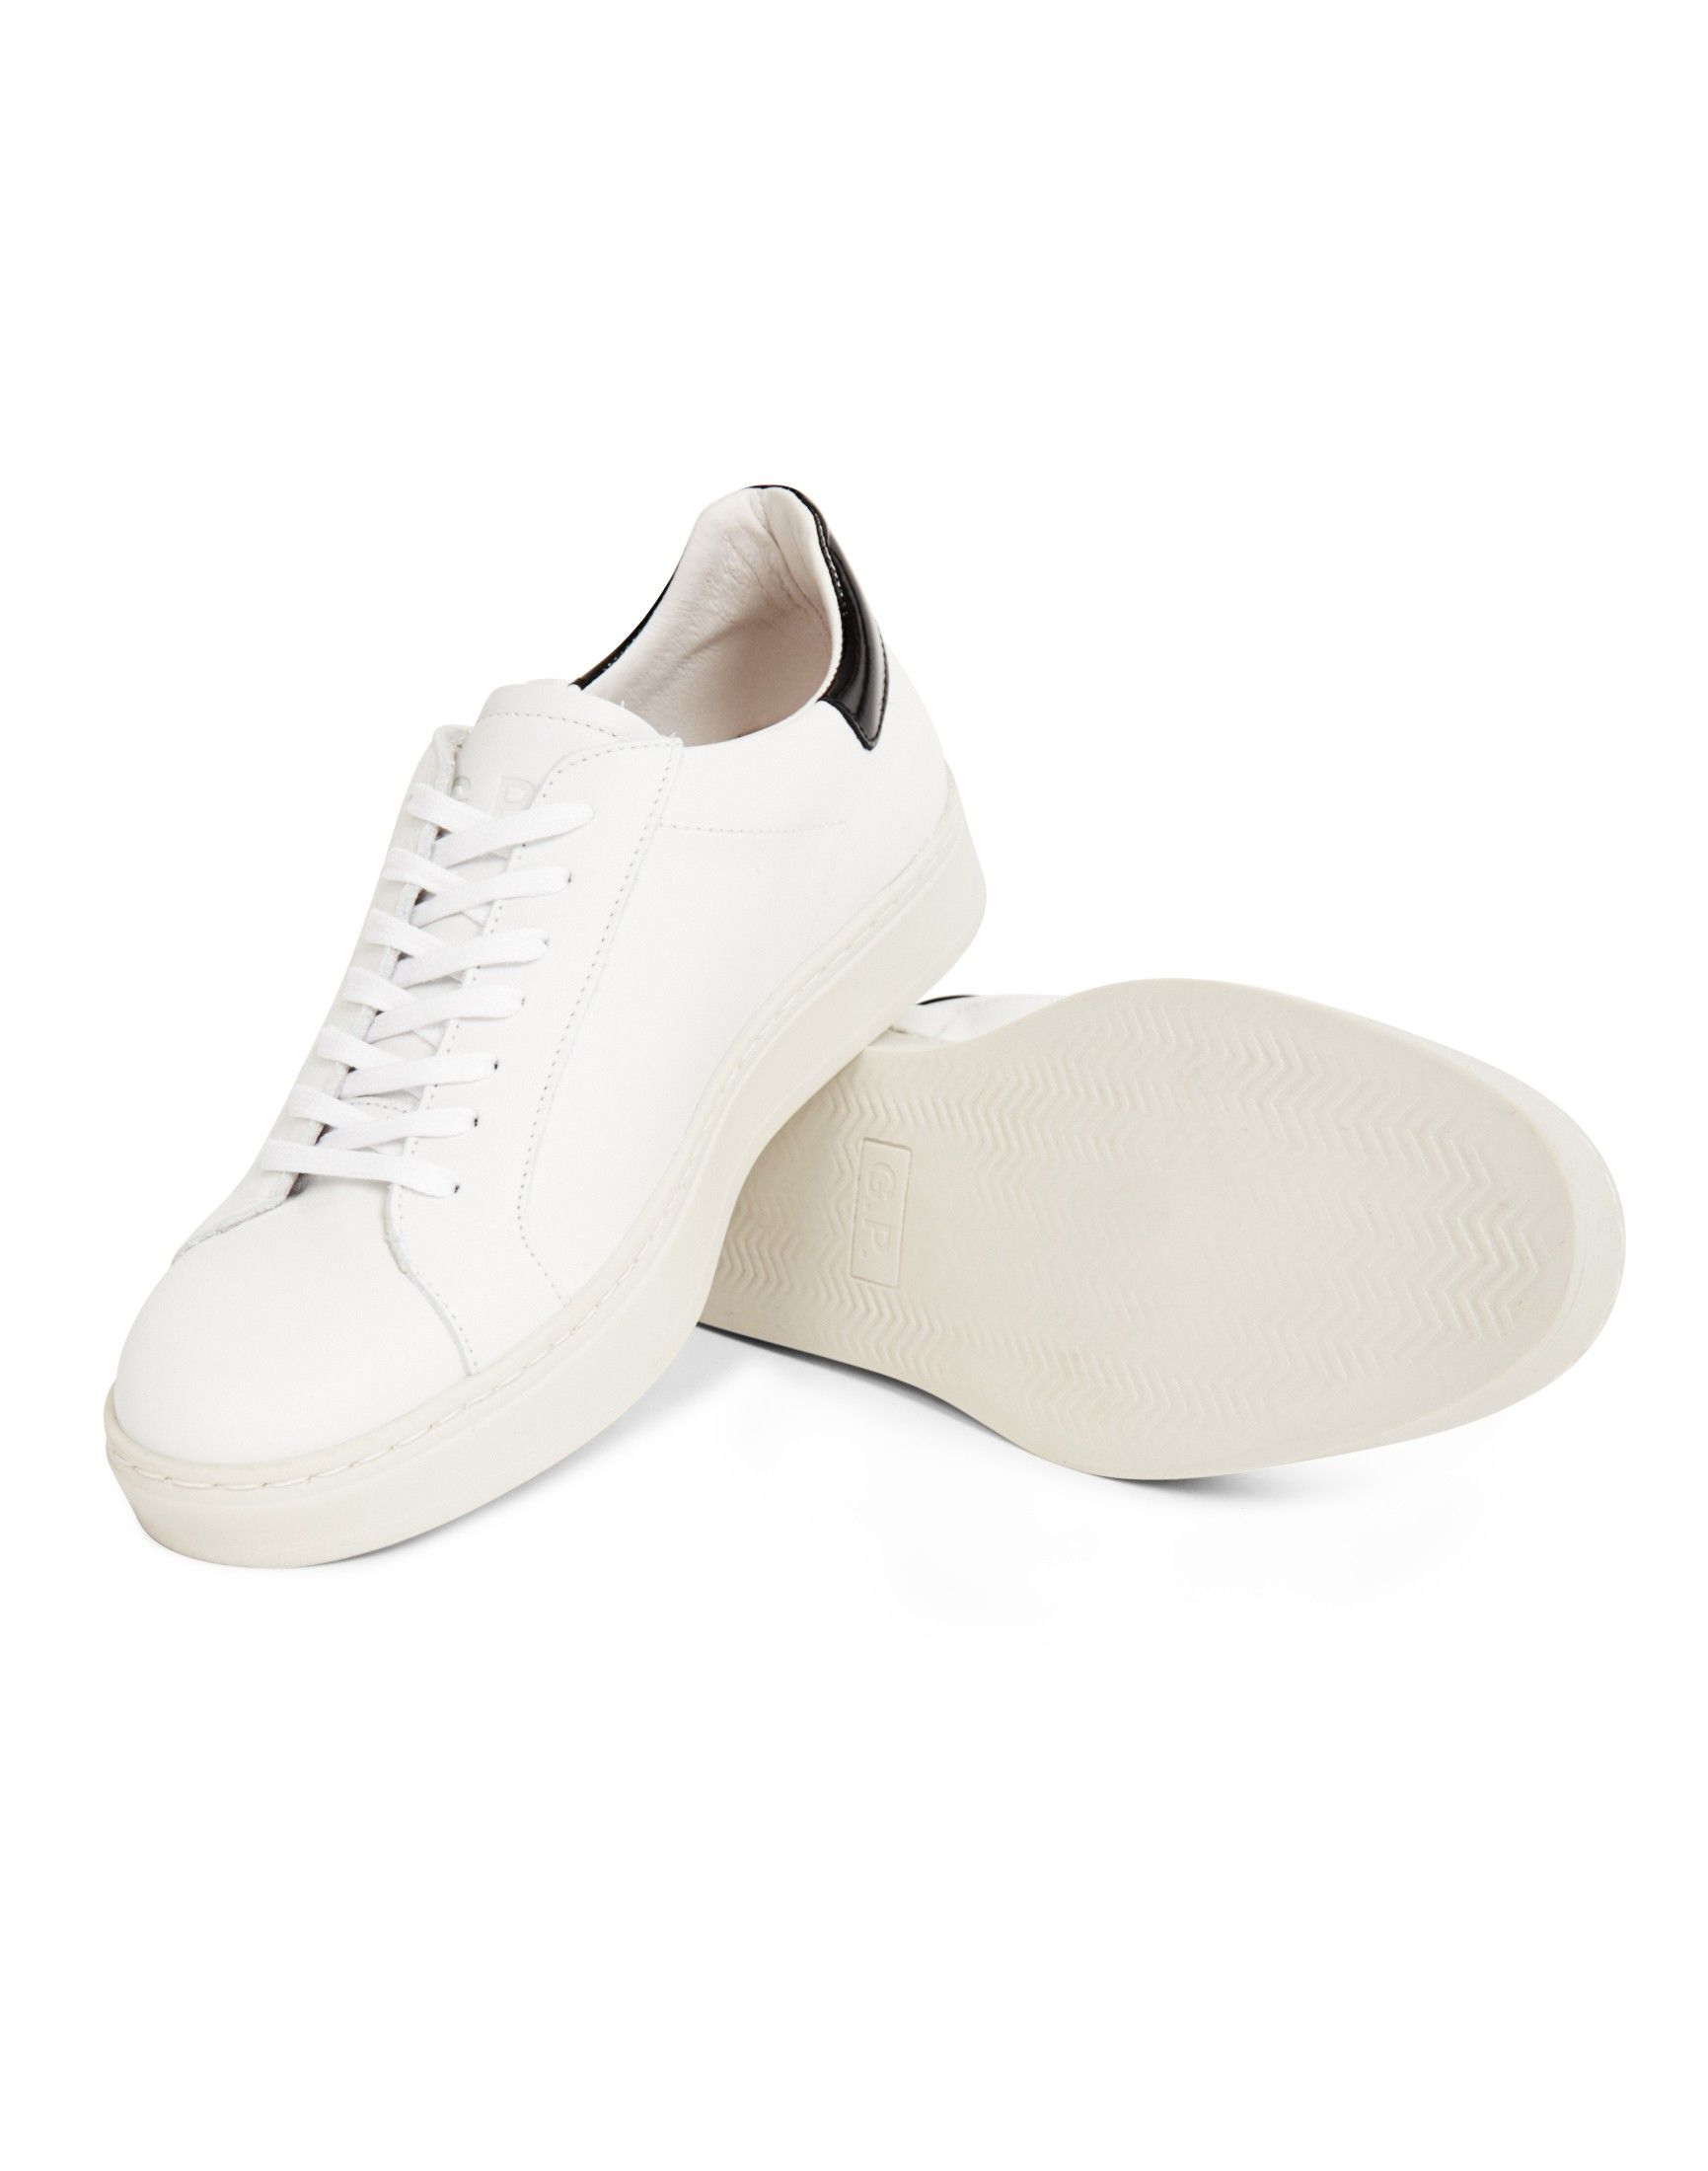 Garment Project Miami Leather Trainer White | Shop men's trainers, shoes  and clothing at The